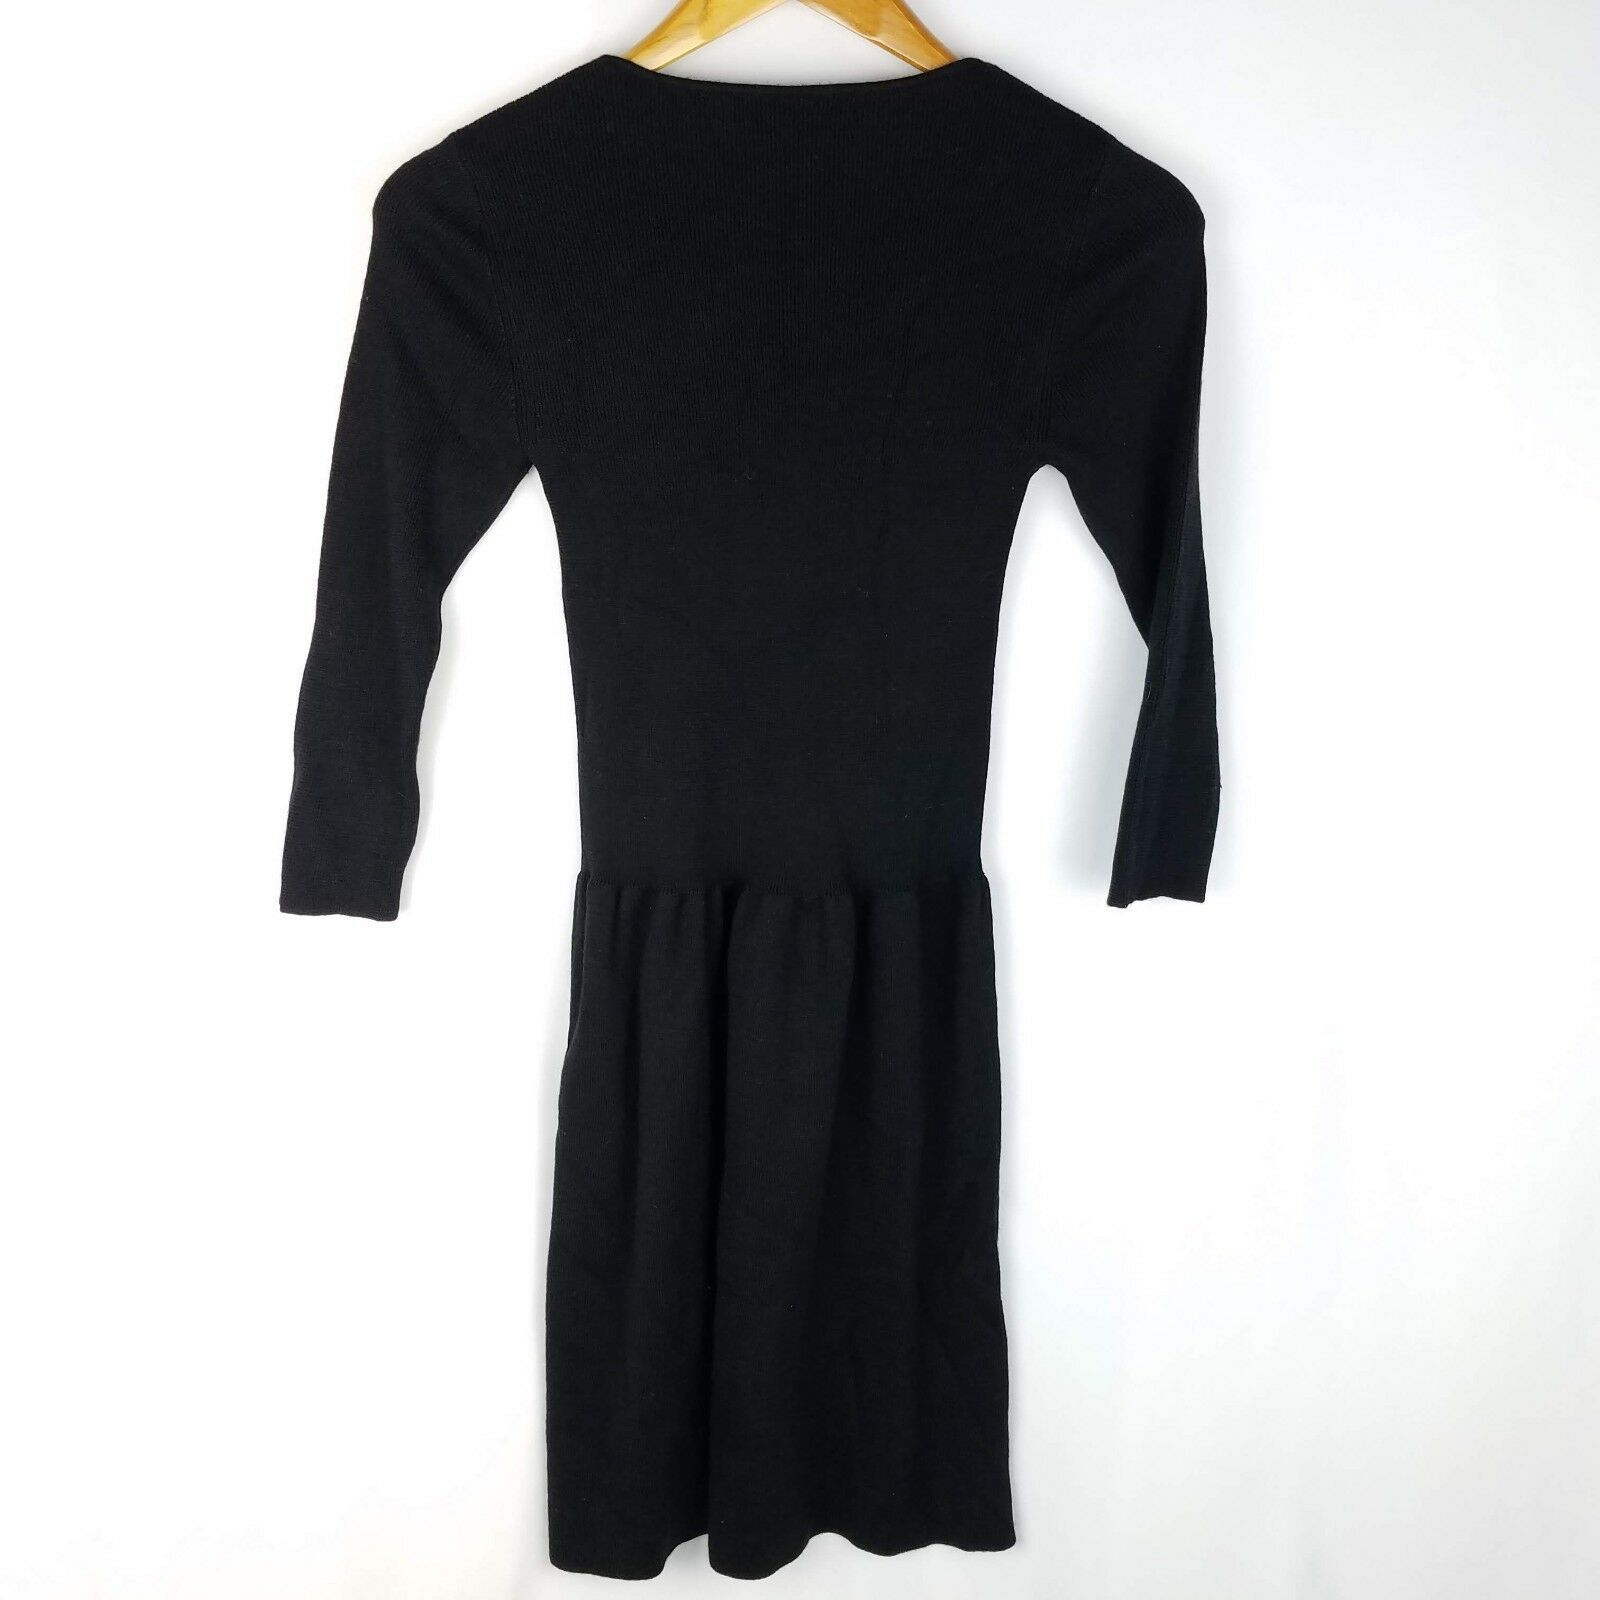 Anne Klein Black Sweater Dress Womens Size S Small 3/4 Sleeve Stretch Short image 2